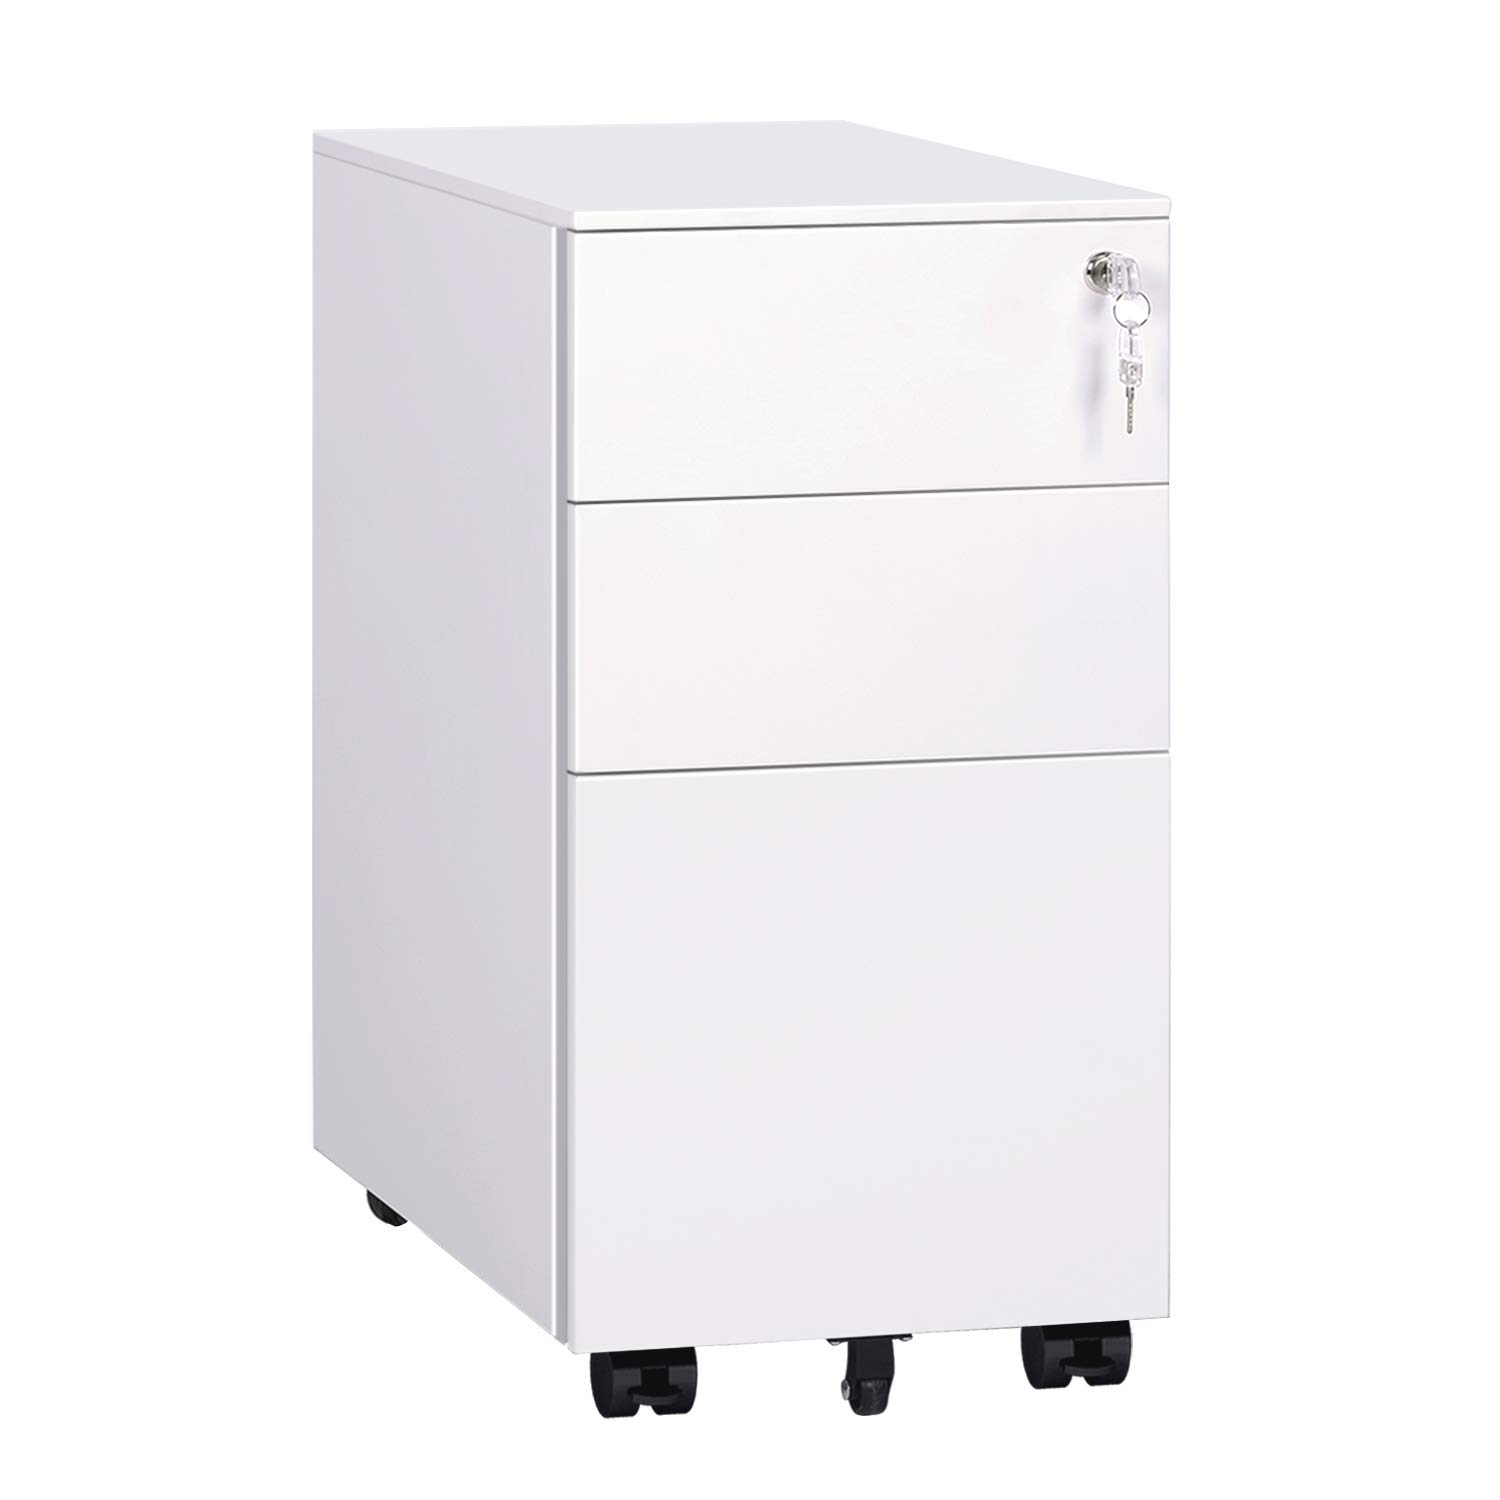 DEVAISE Locking File Cabinet, 3 Drawer Rolling Metal Filing Cabinet, Fully Assembled Except Wheels by DEVAISE